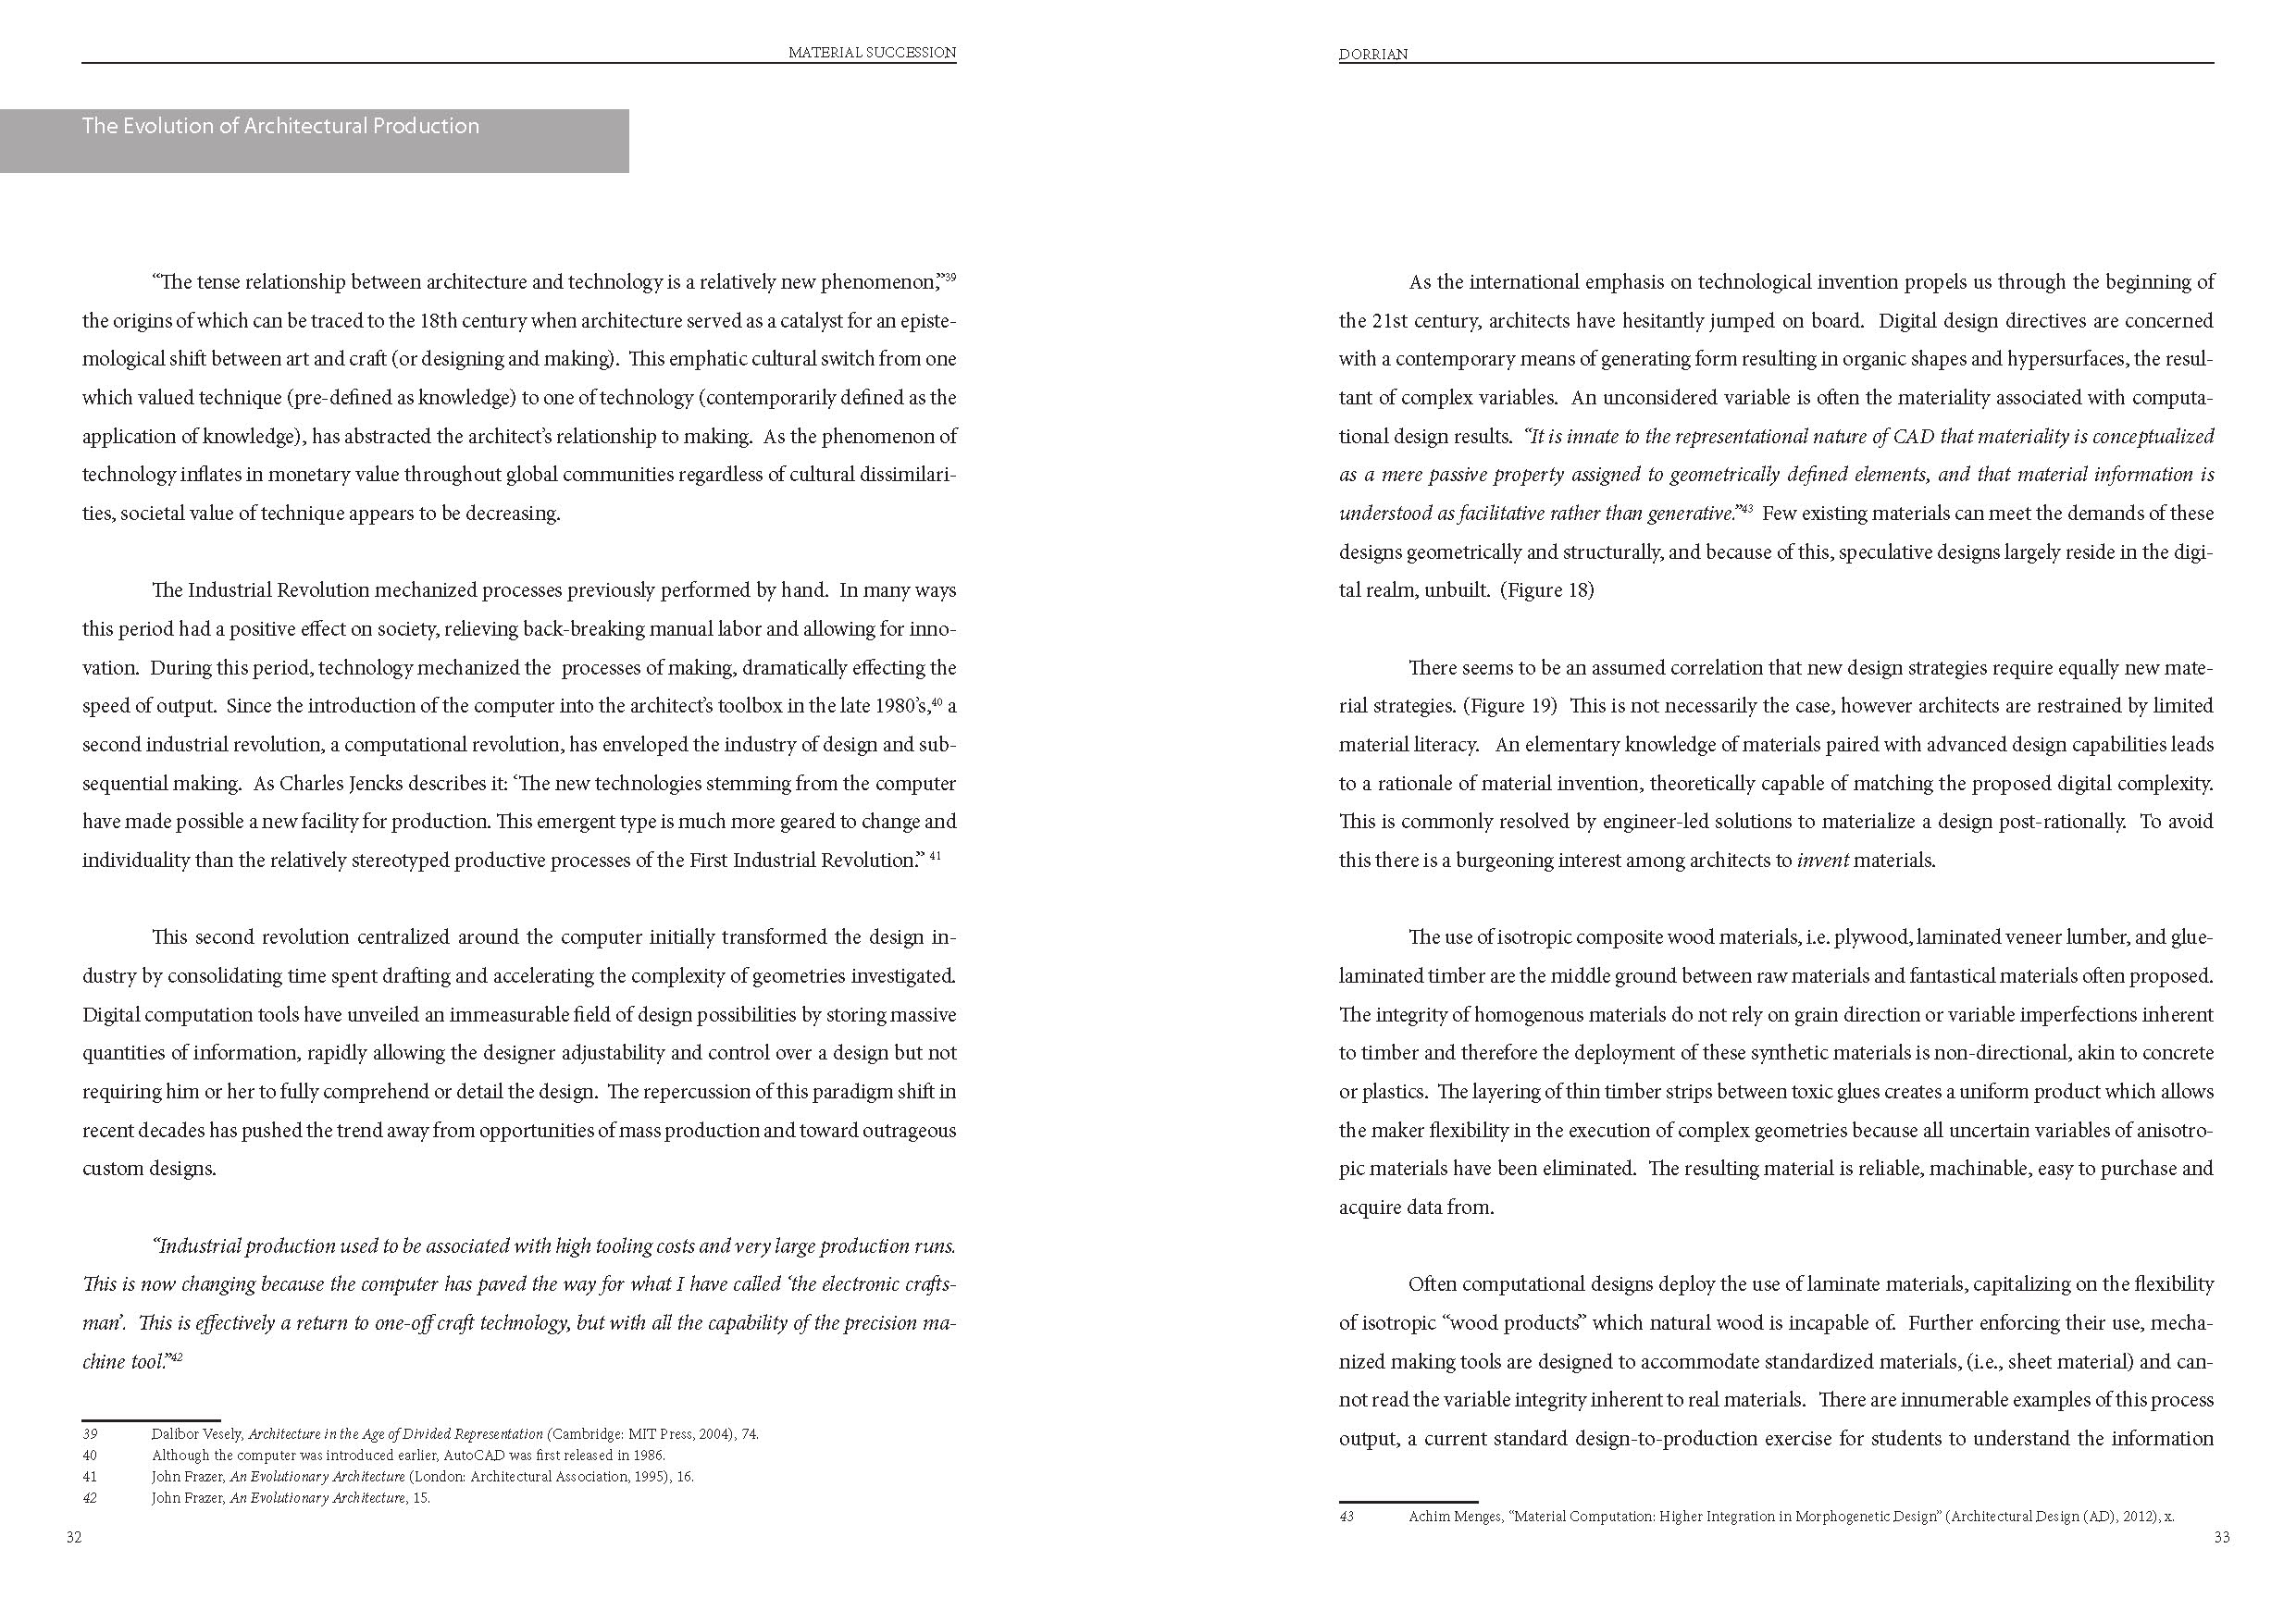 130131_Material SuccessionFORSUBMITTAL_Page_21.jpg